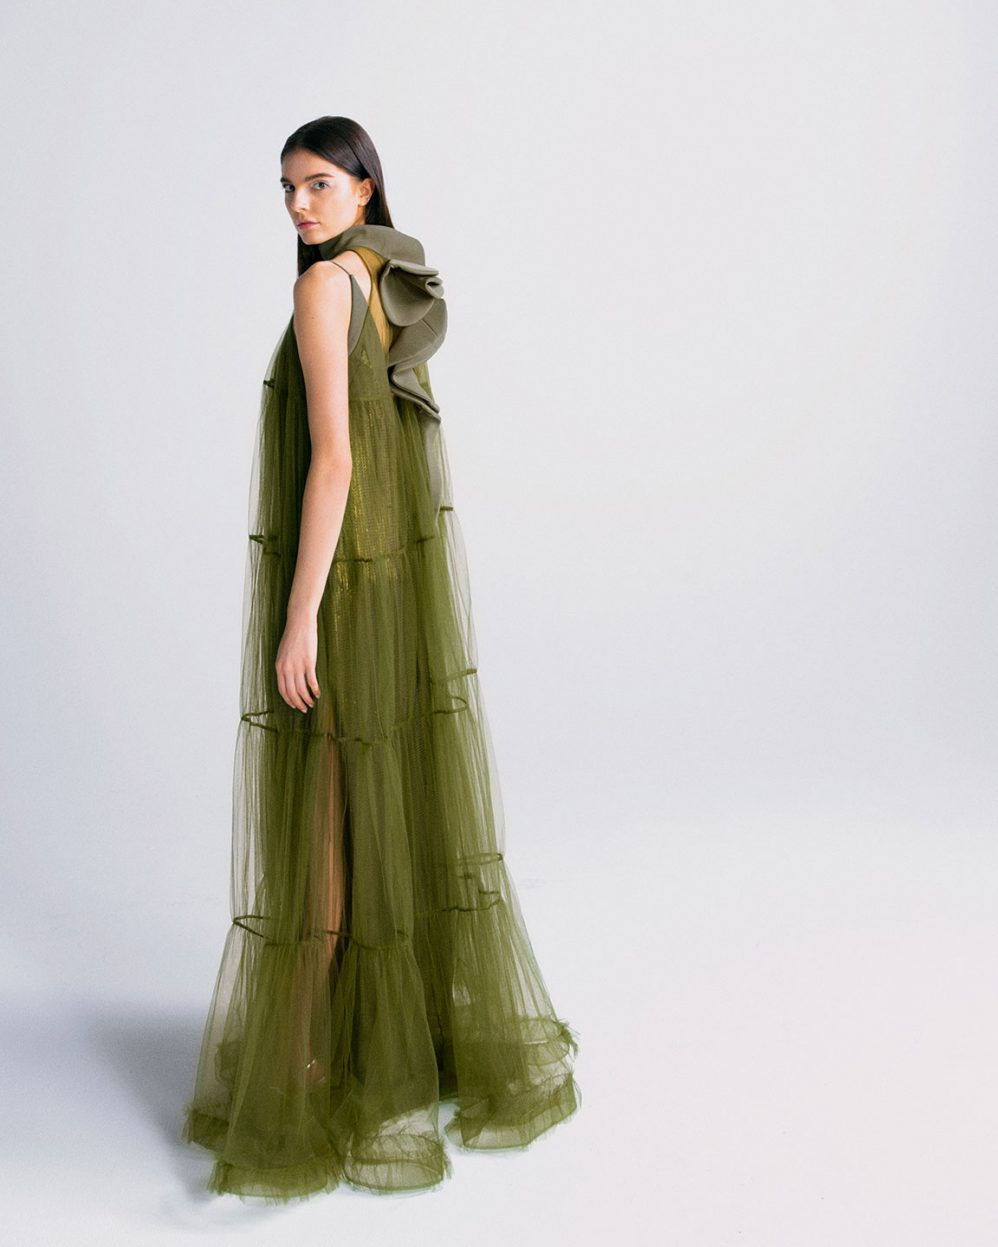 Azzi+Osta-Collection6-Look24-1-